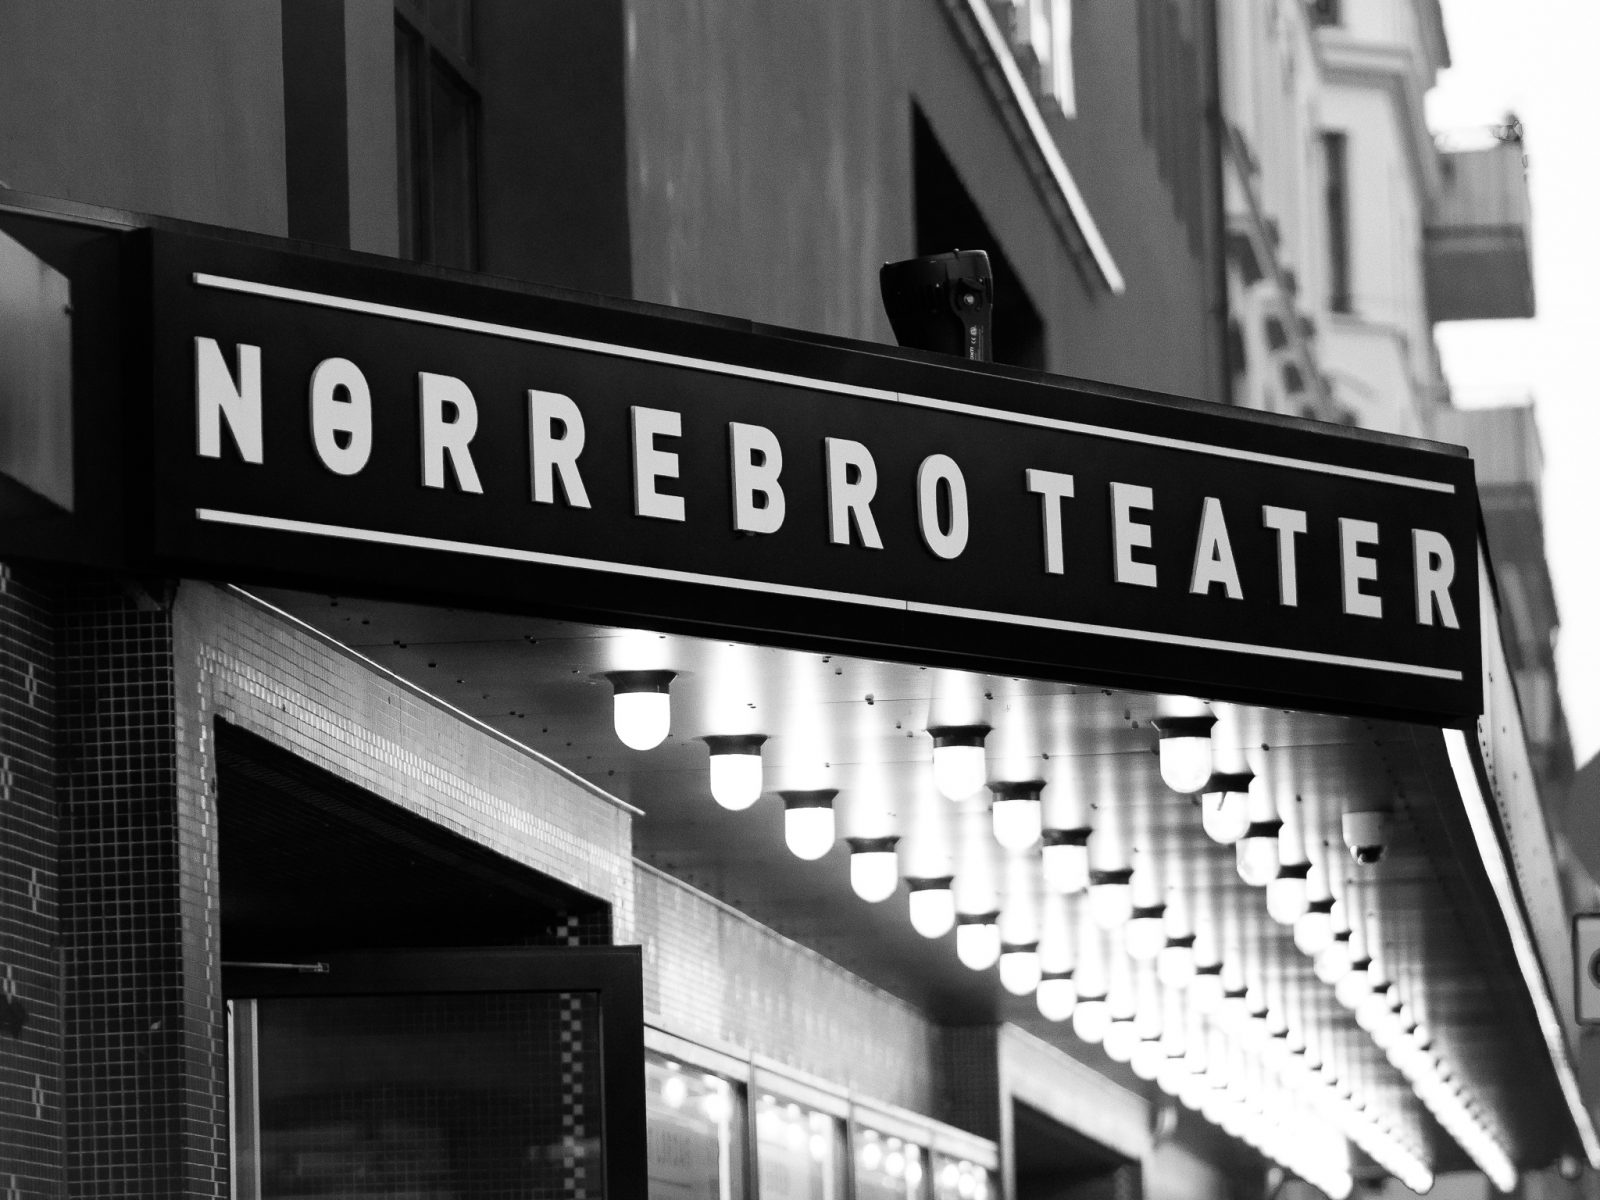 Nørrebro theater - the venue of the day